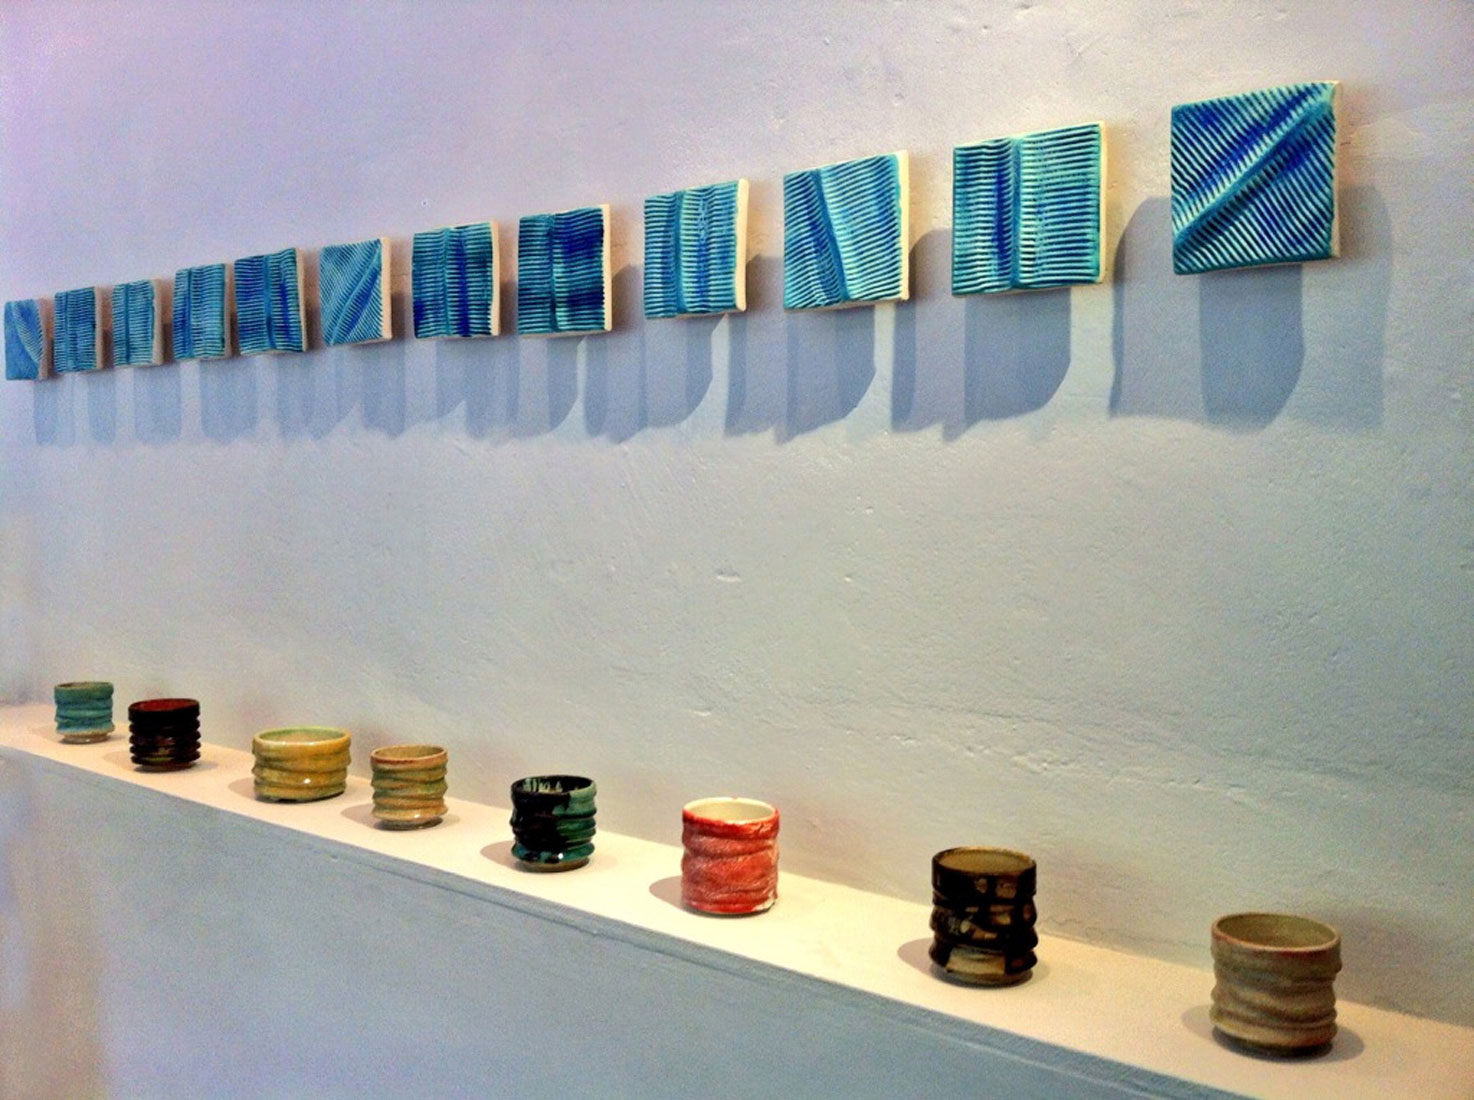 12 bar blues contemporary ceramics installation by gary wood